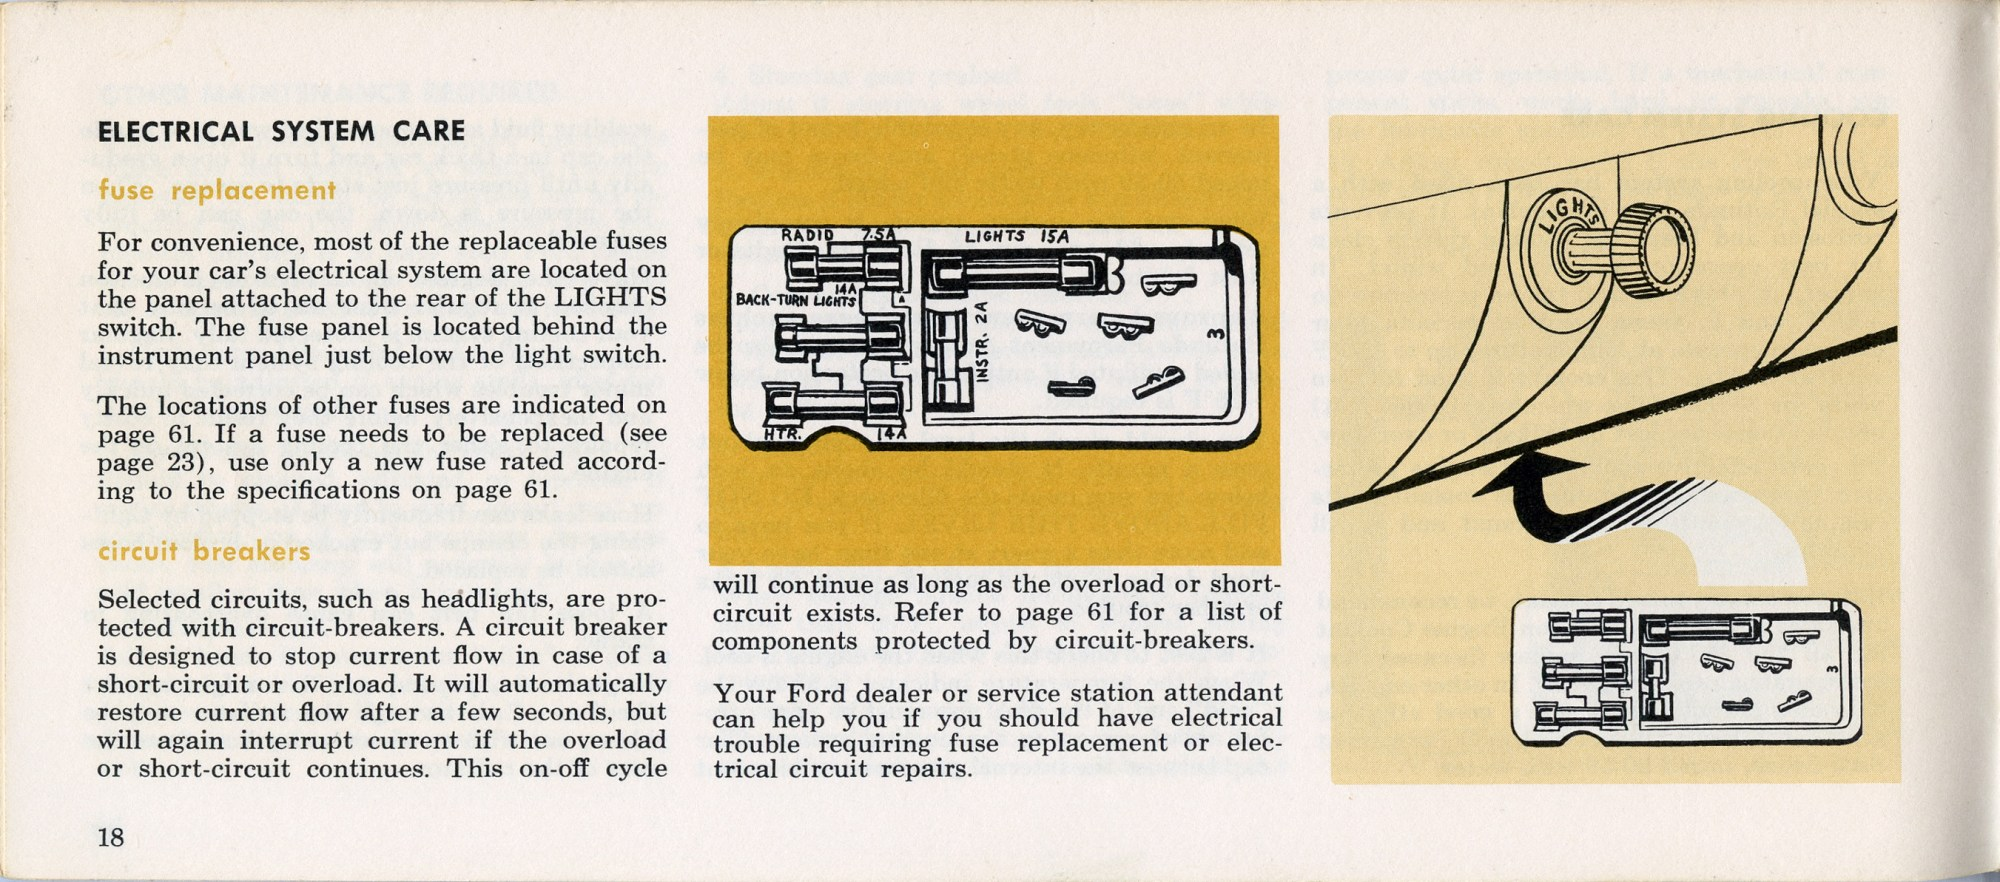 hight resolution of 1964 ford falcon fuse box wiring diagram yer falcon sprint 1964 ford falcon fuse box wiring